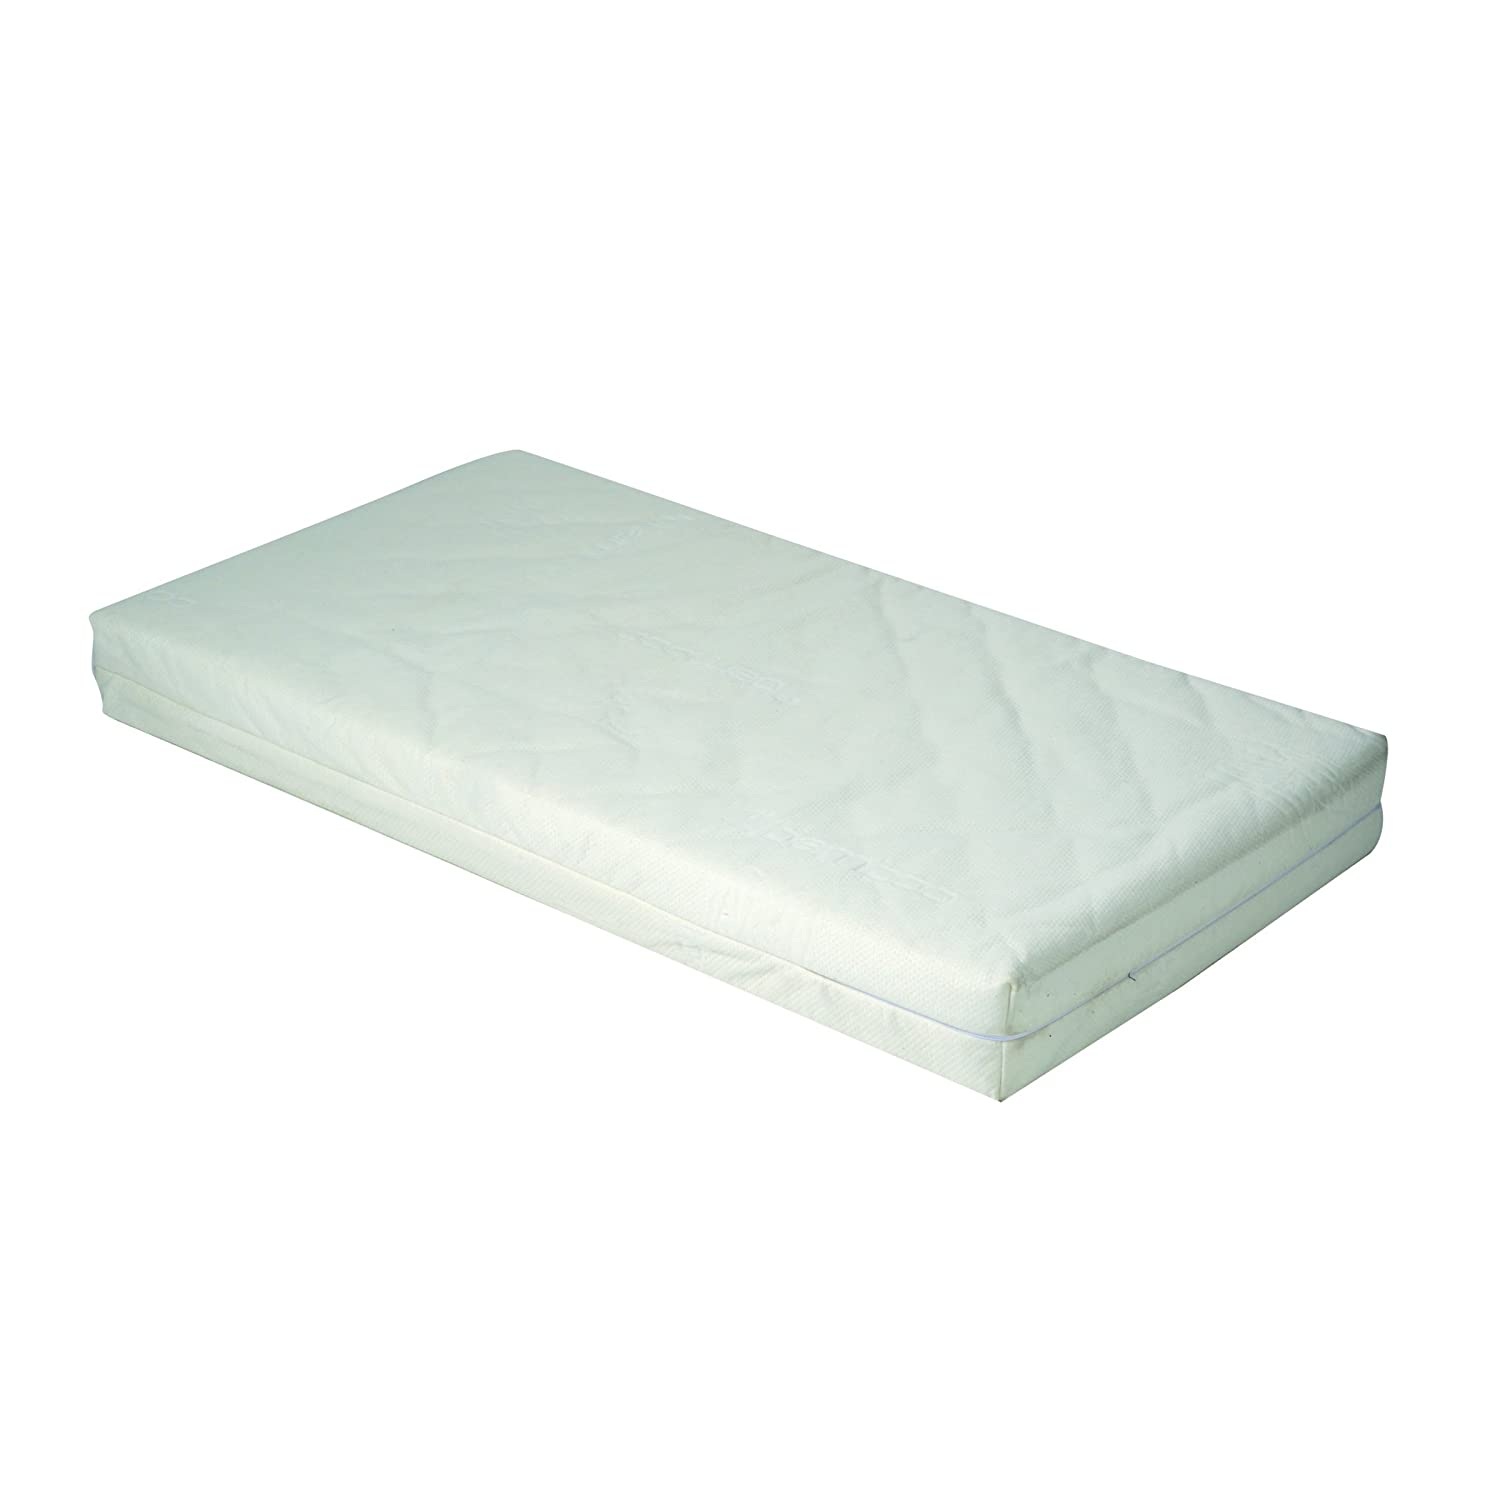 Candide Baby 2 Sided Seasonal Viscose from Bamboo Mattress, White 454350